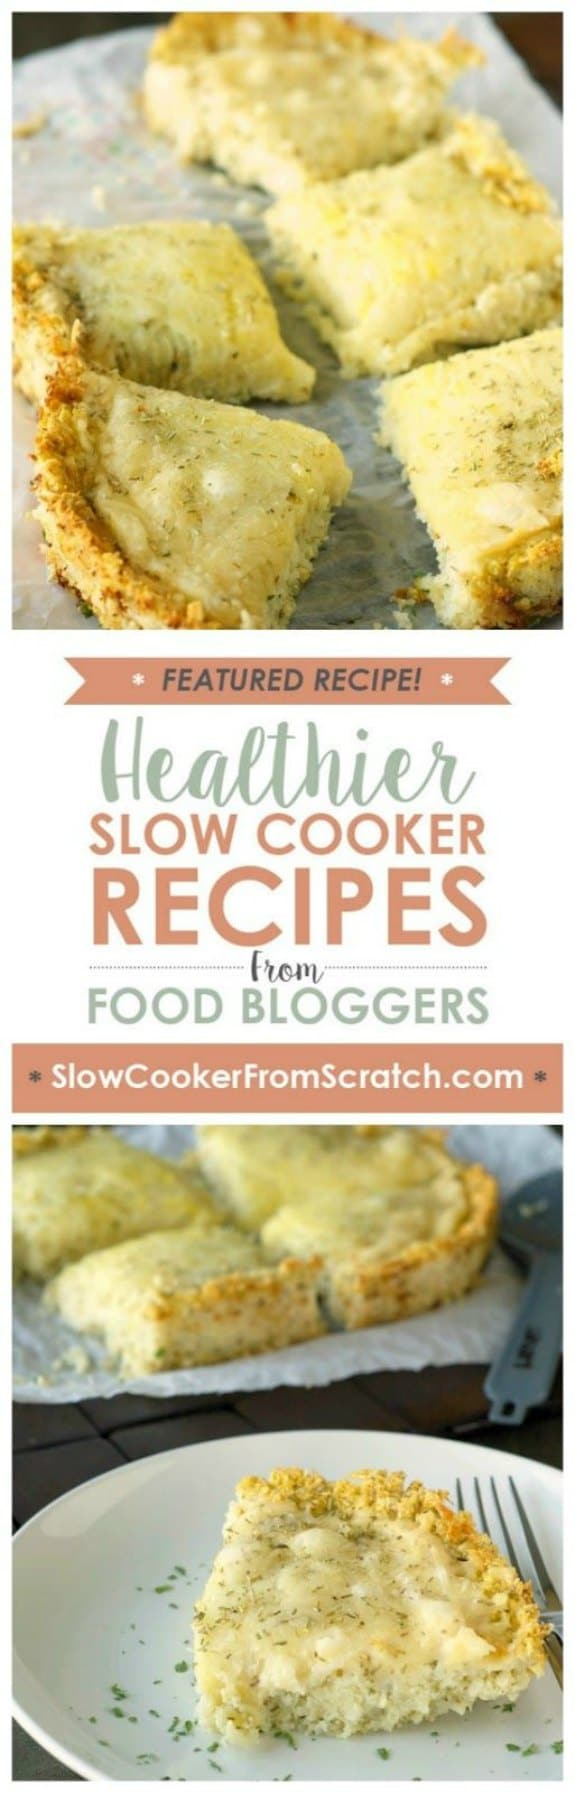 Slow Cooker Deep Dish Cheese Pizza with Cauliflower Crust from Slow Cooker Gourmet